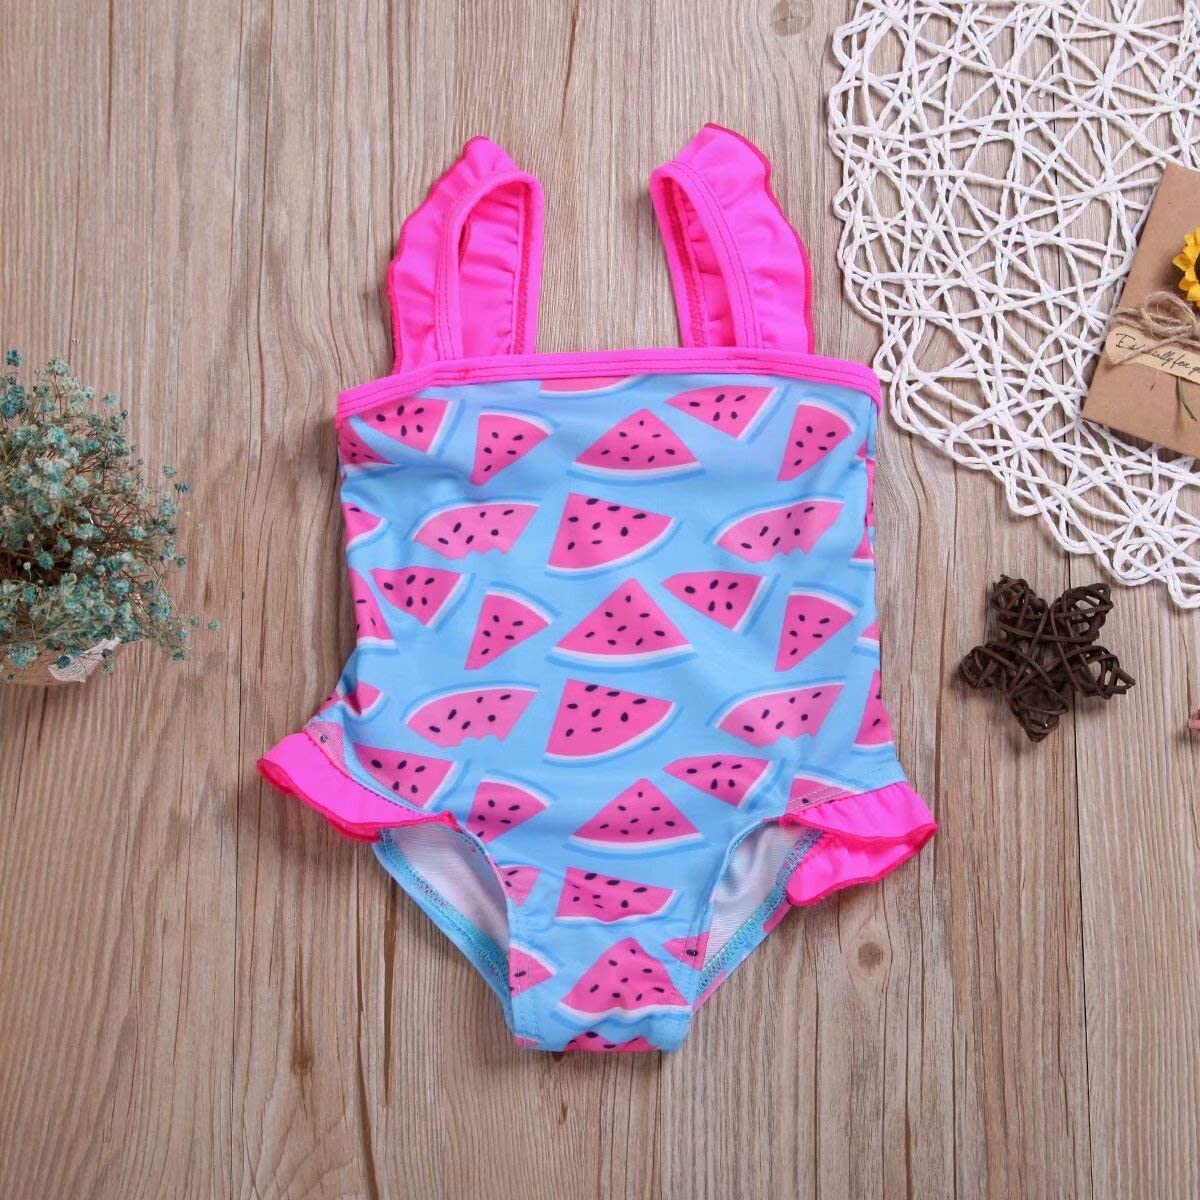 Pink LAMOSKY Toddler Baby Girls One Piece Swimwear Cute Watermelon Printed Sleeveless Swimsuit Infant Ruffle Bathing Suits Size 12-18 months//Tag90